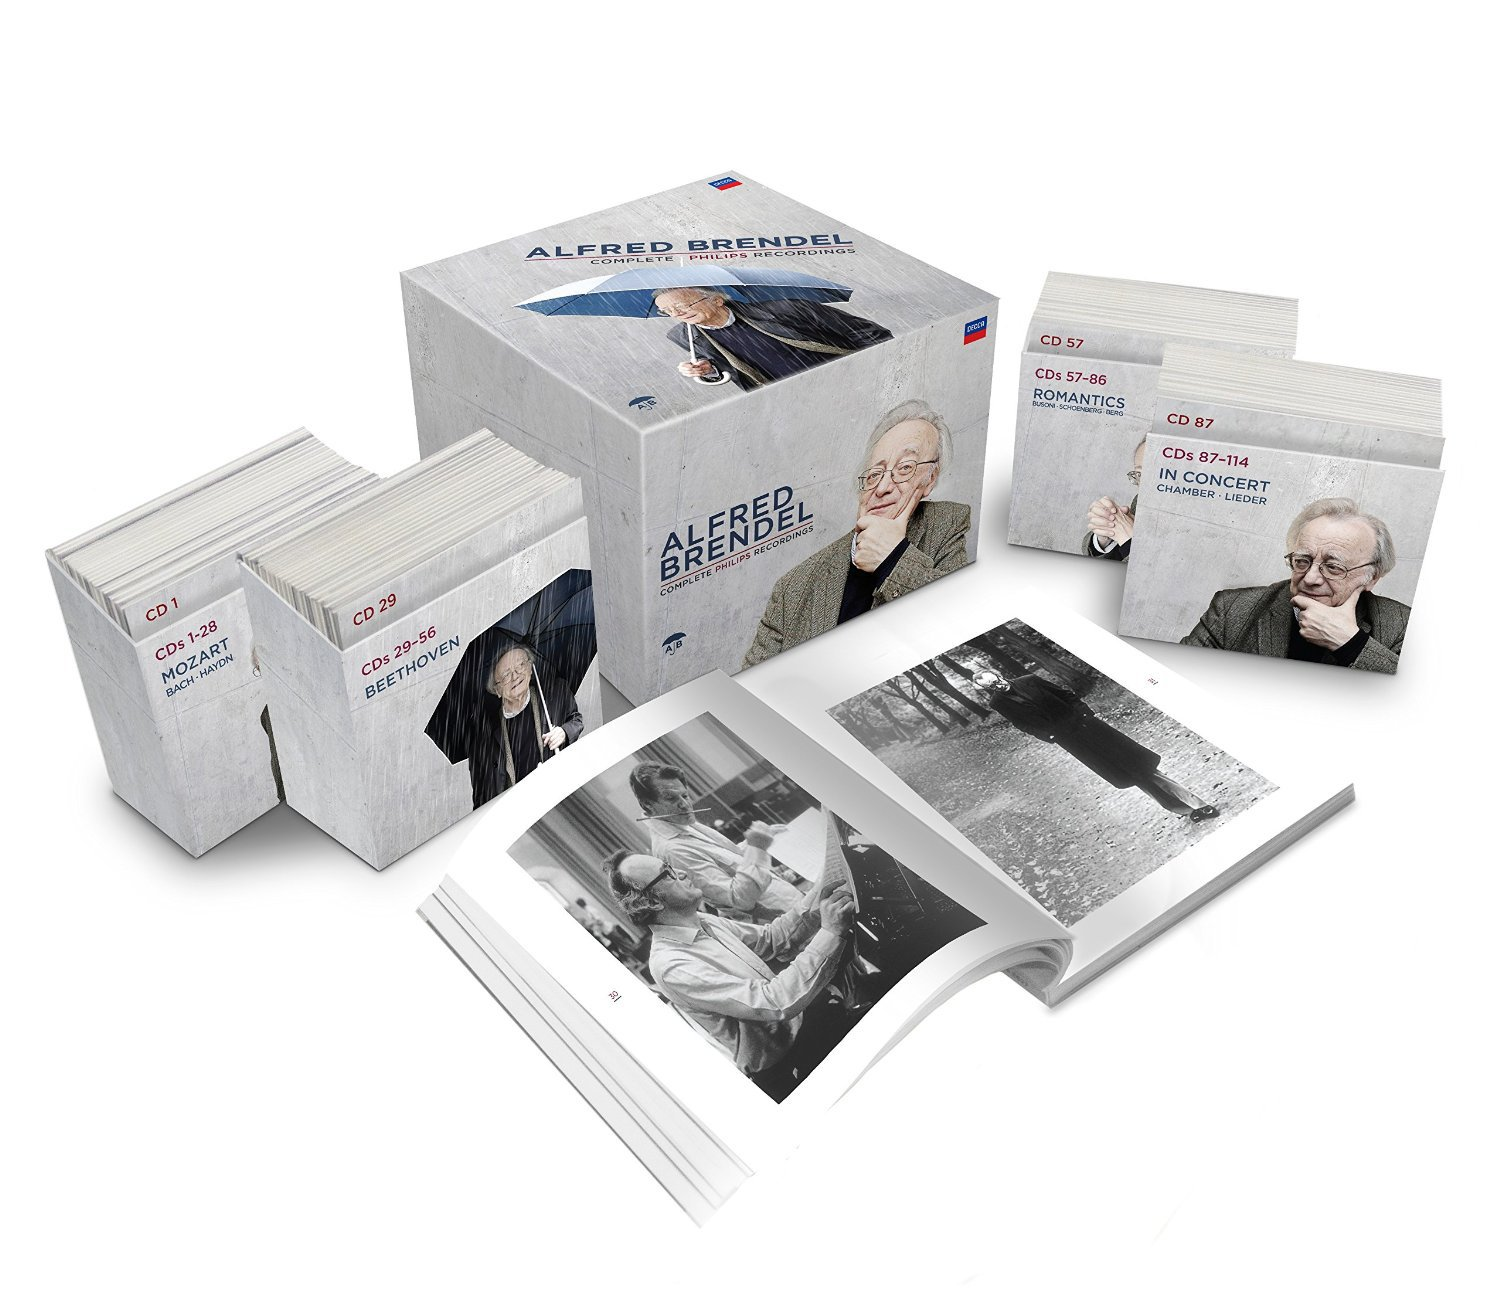 Alfred Brendel - Complete Recordings [114 CD][Box Set] by CD